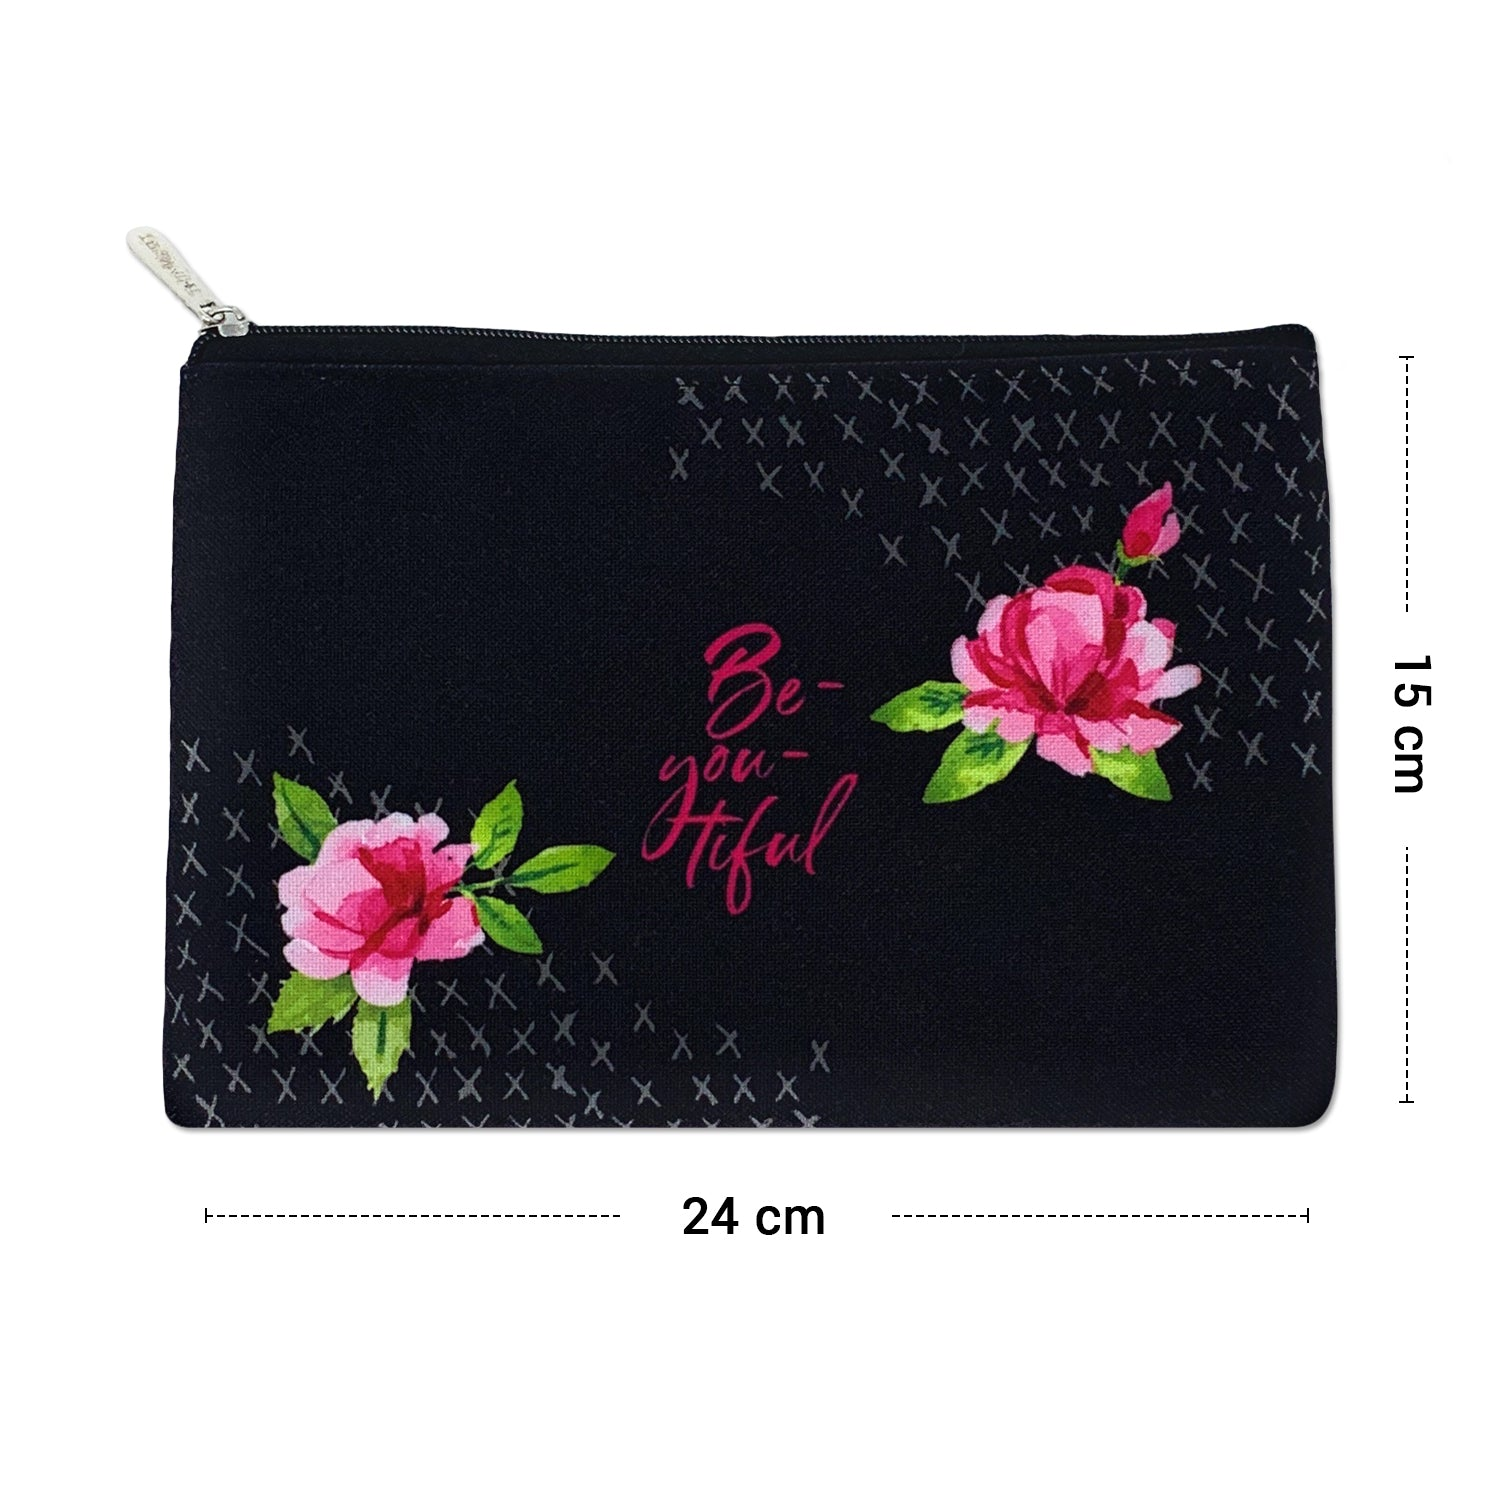 Beyoutiful Black Canvas Large Pouch